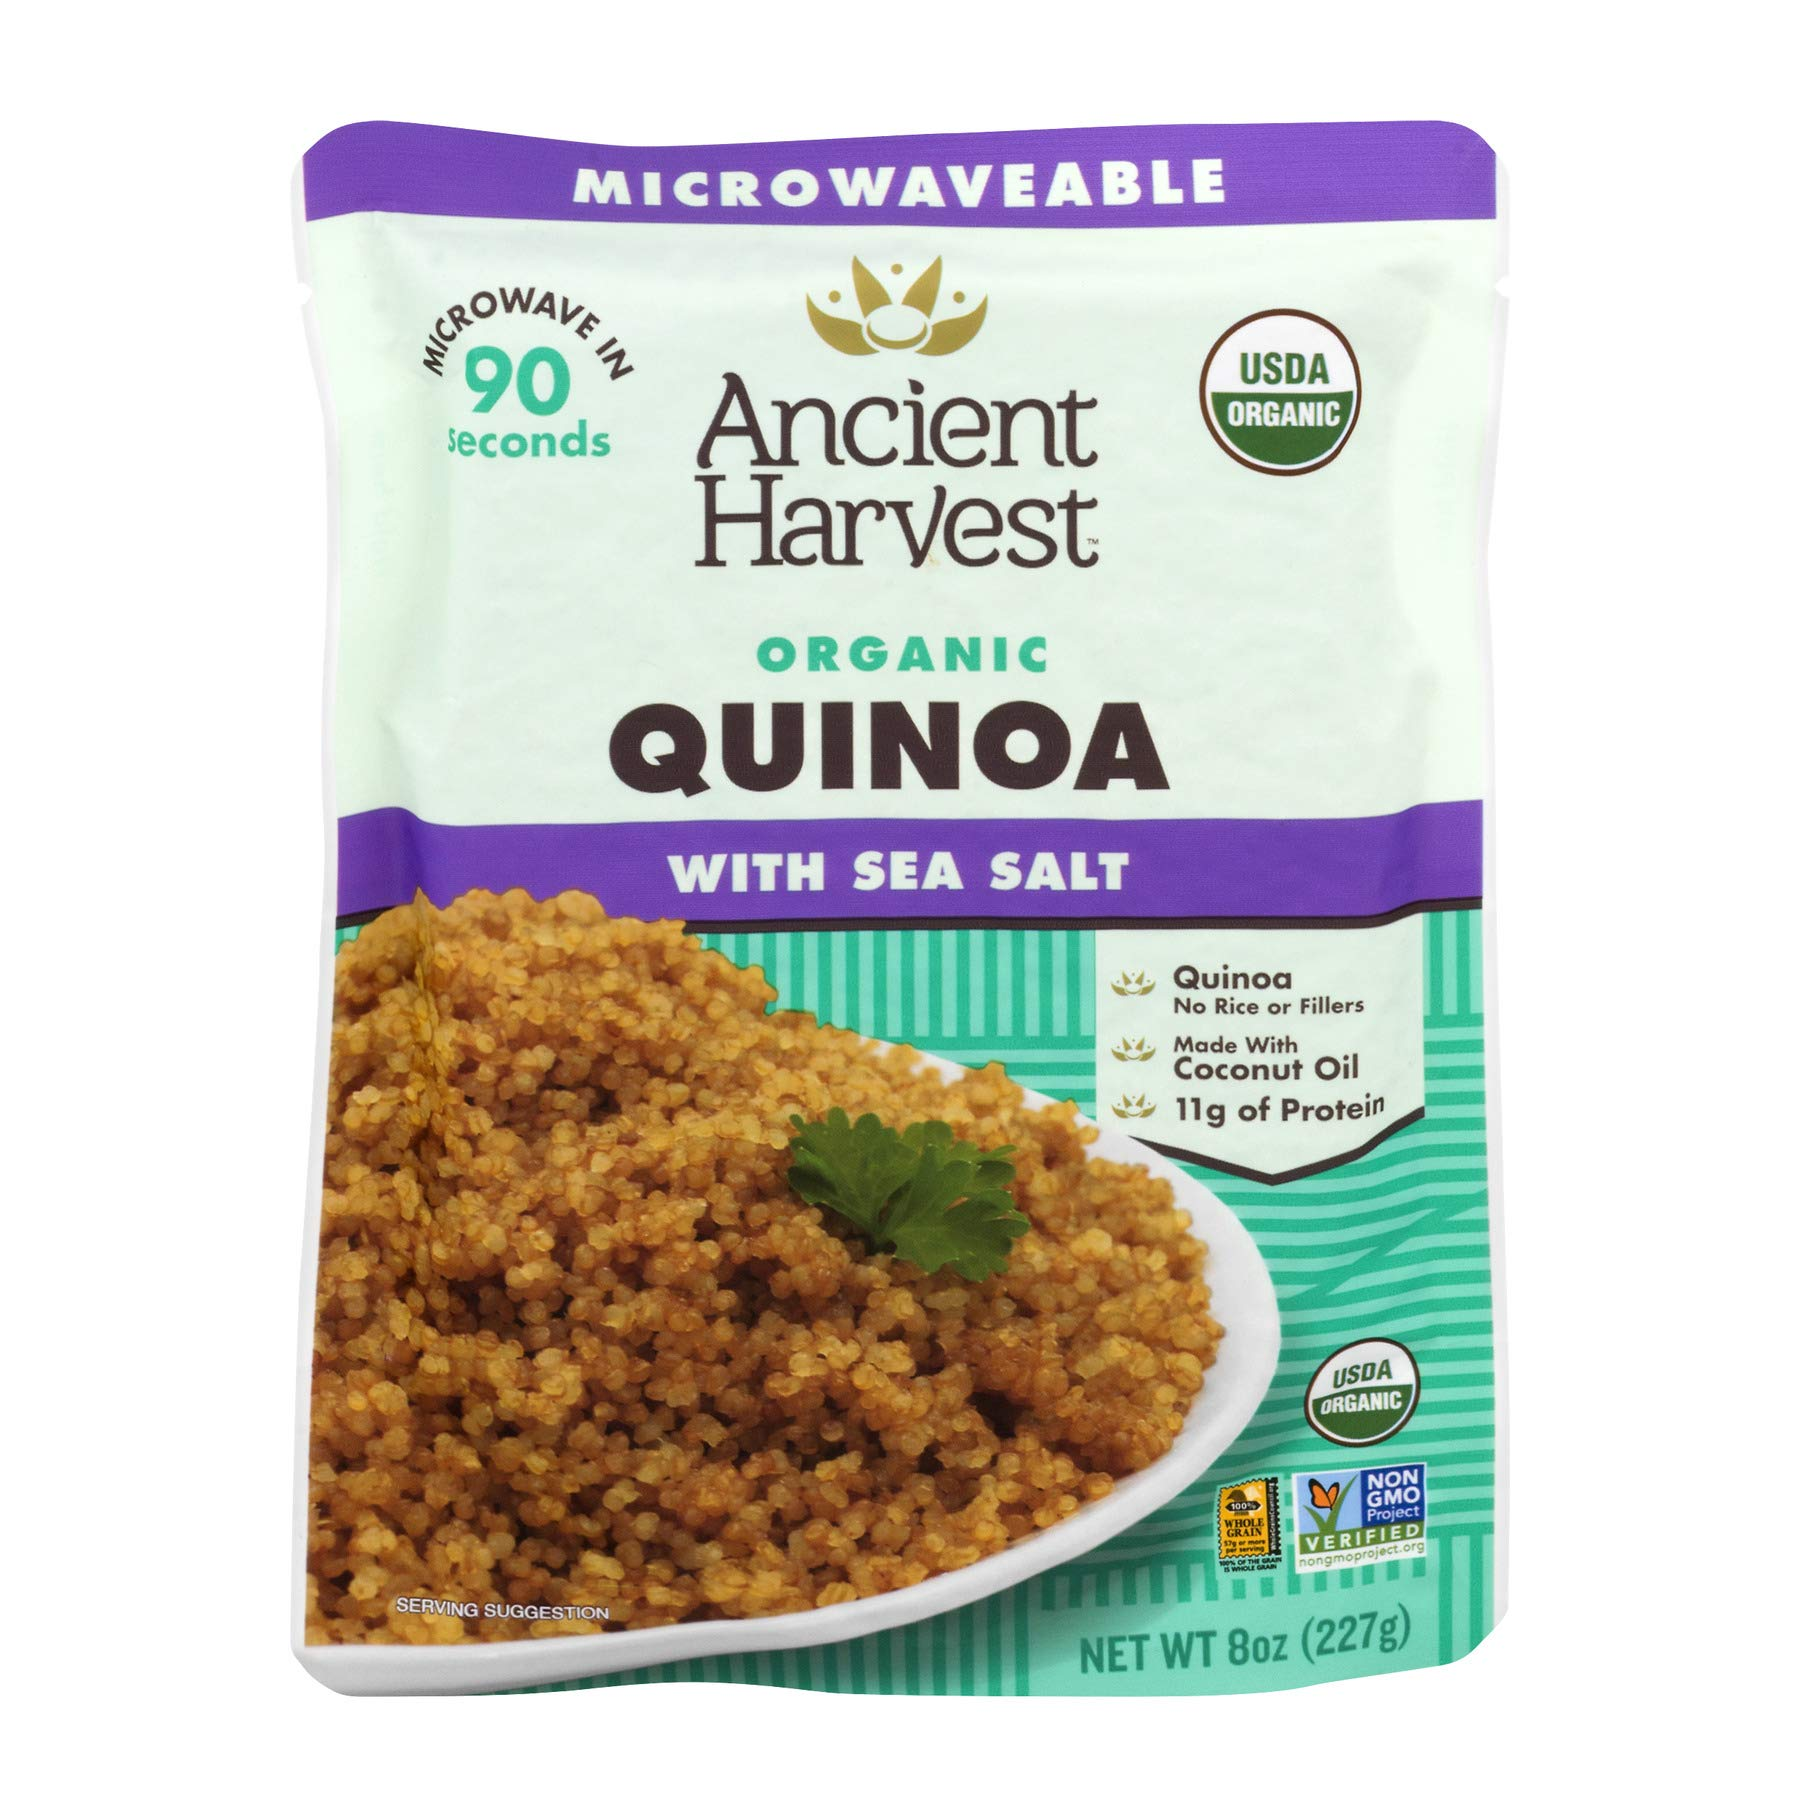 Ancient Harvest Certified Organic Microwavable Quinoa Pouch, Quinoa With Sea Salt, 8 oz (Pack of 12) by Ancient Harvest